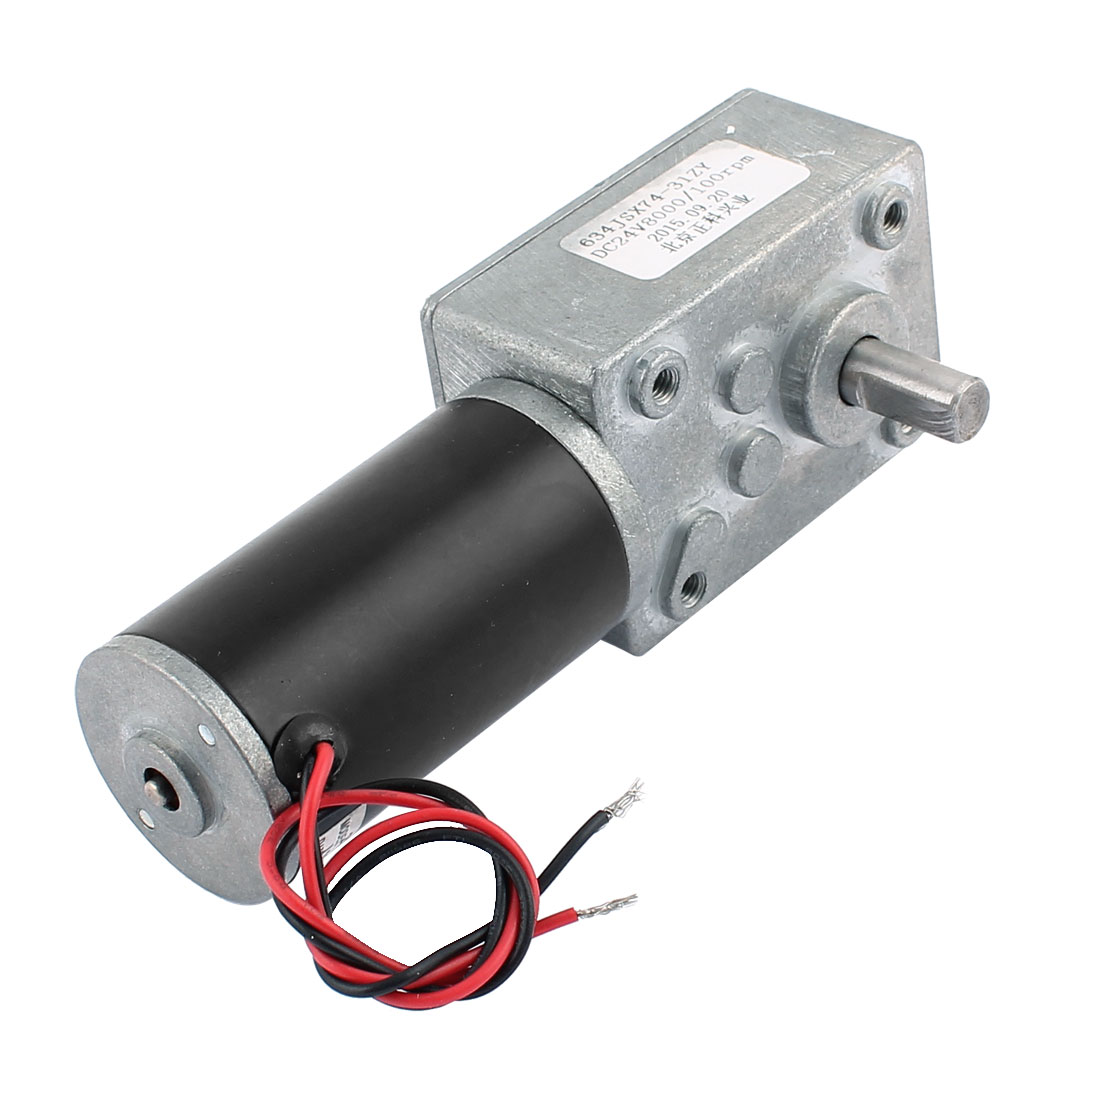 DC 24V 100RPM 8mmx15mm Dual D-Shape Shaft Electric Power Turbo Worm Geared Motor